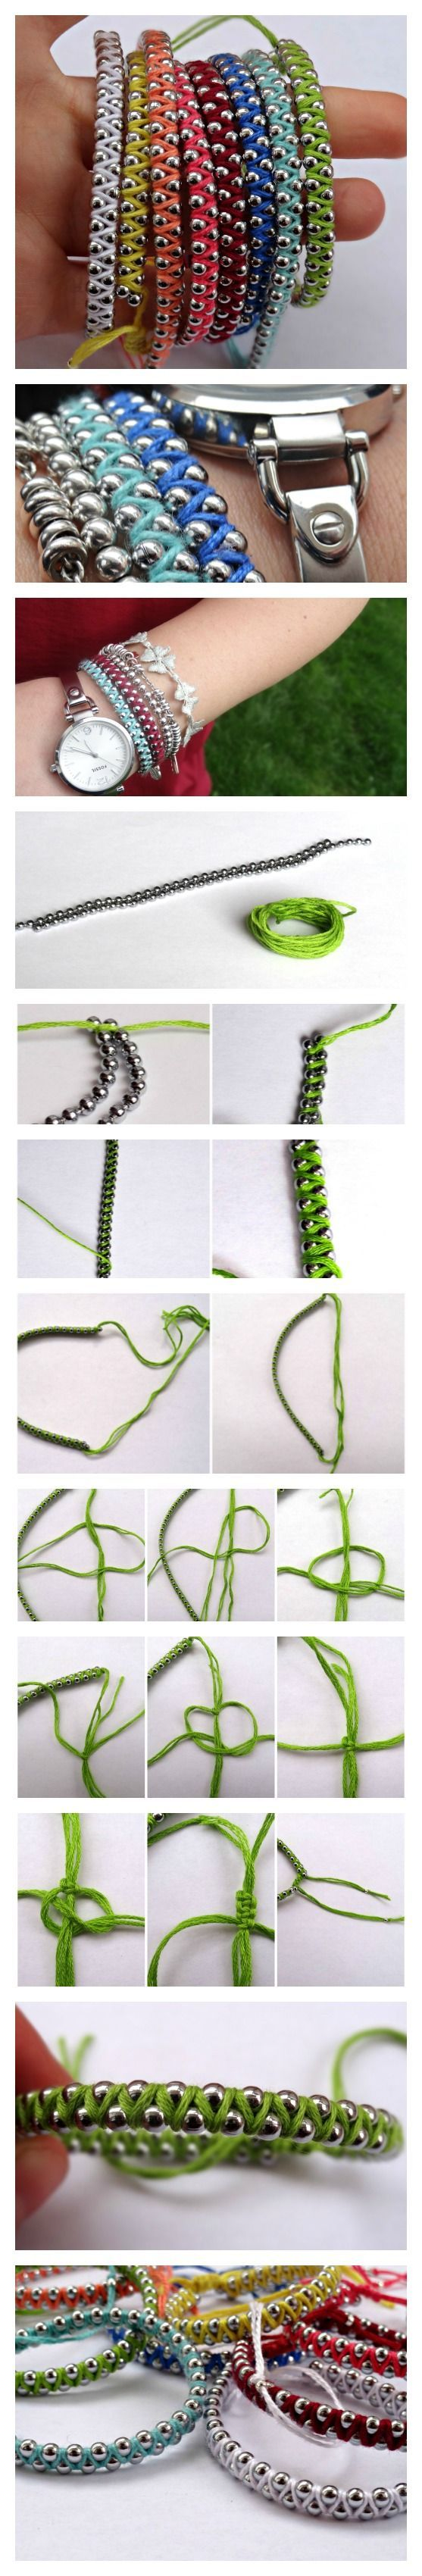 Wrap-style bracelet using ball chain, a fast little project  #handmade #jewelry